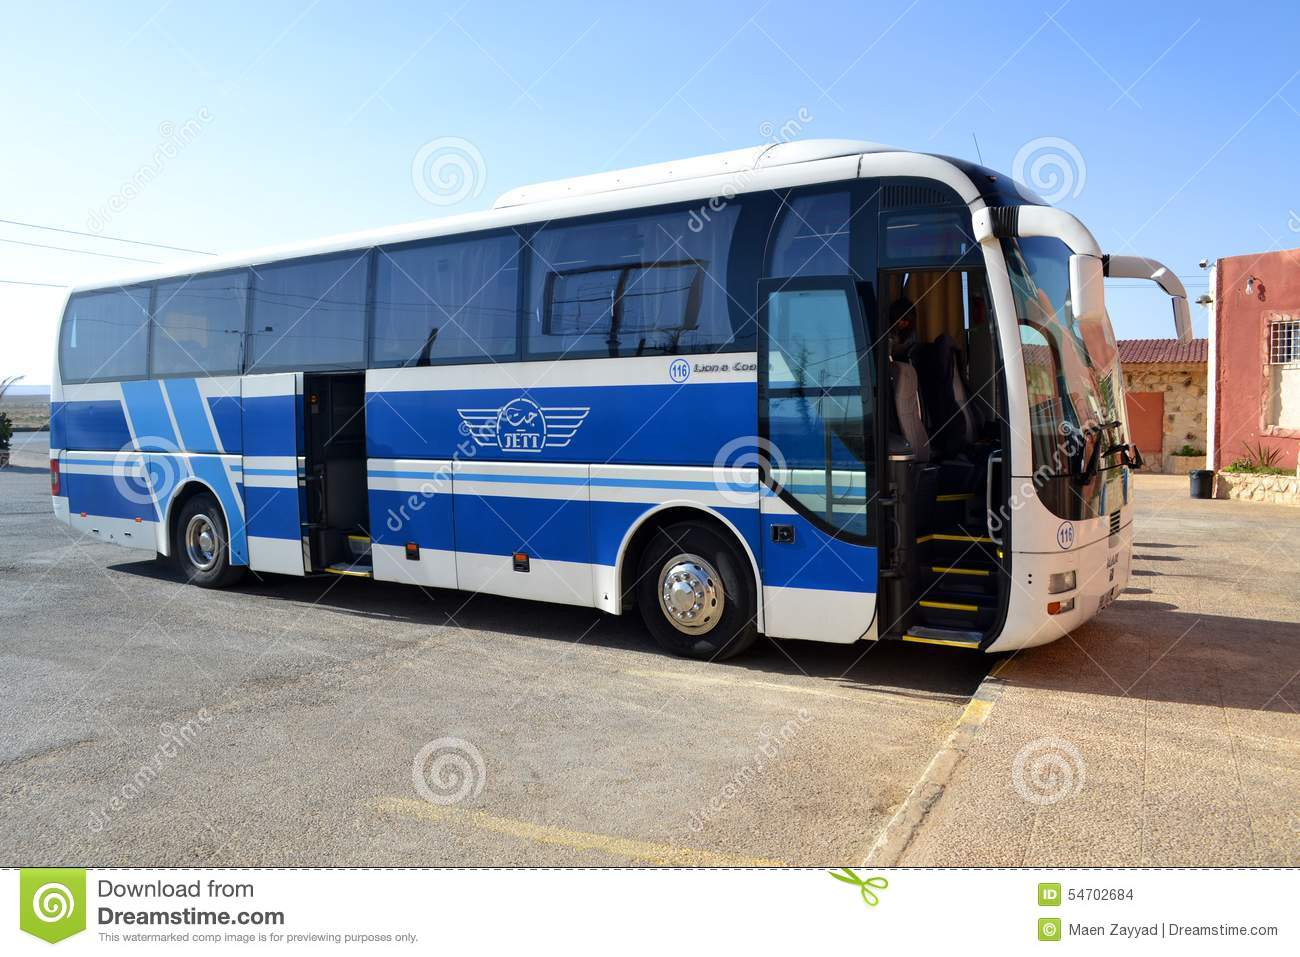 jordan express tourist transportation jett